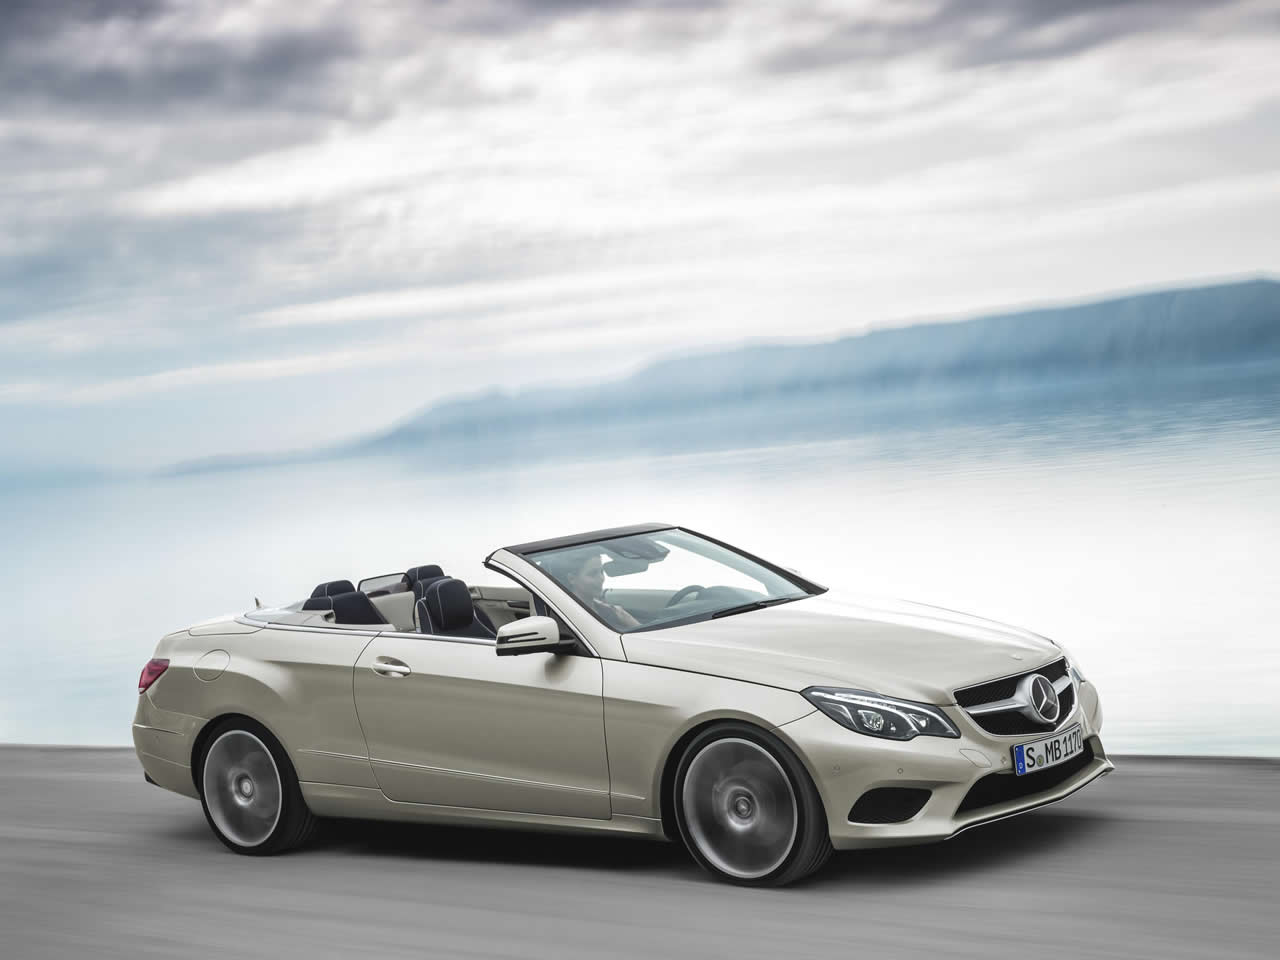 Mercedes benz e class cabriolet buying guide for New mercedes benz convertible